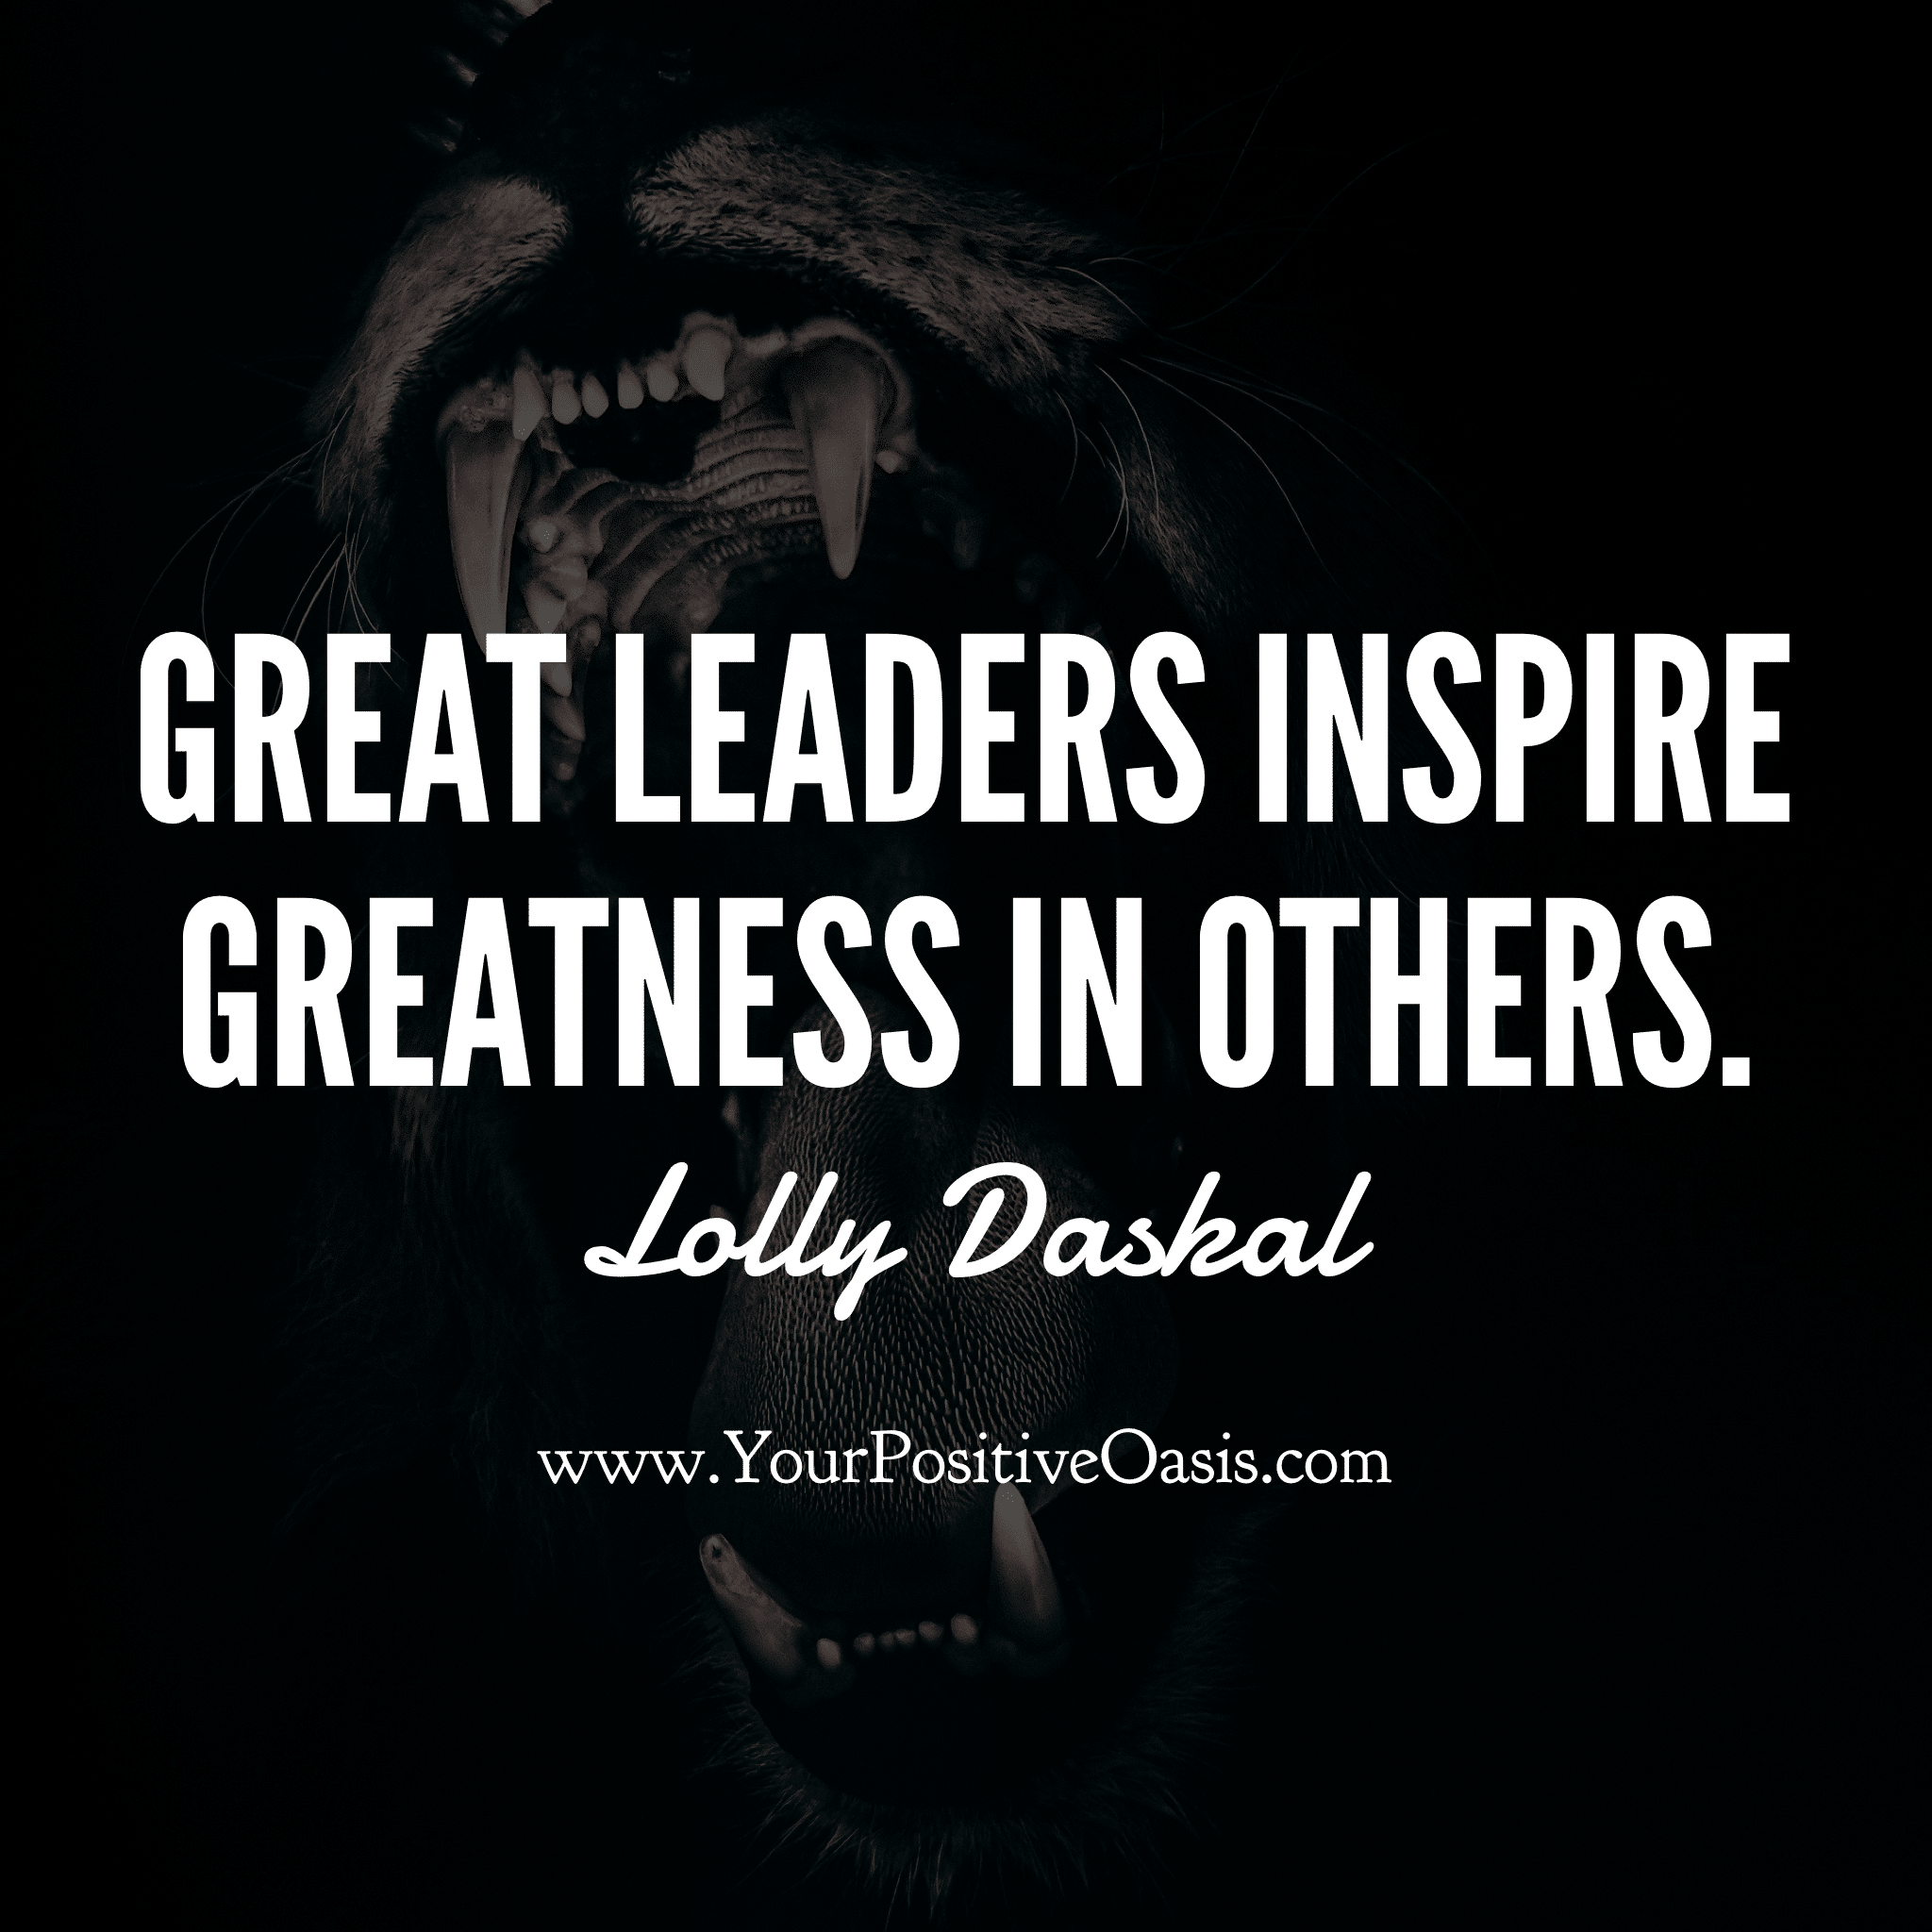 50 Highly Inspirational Leadership Quotes